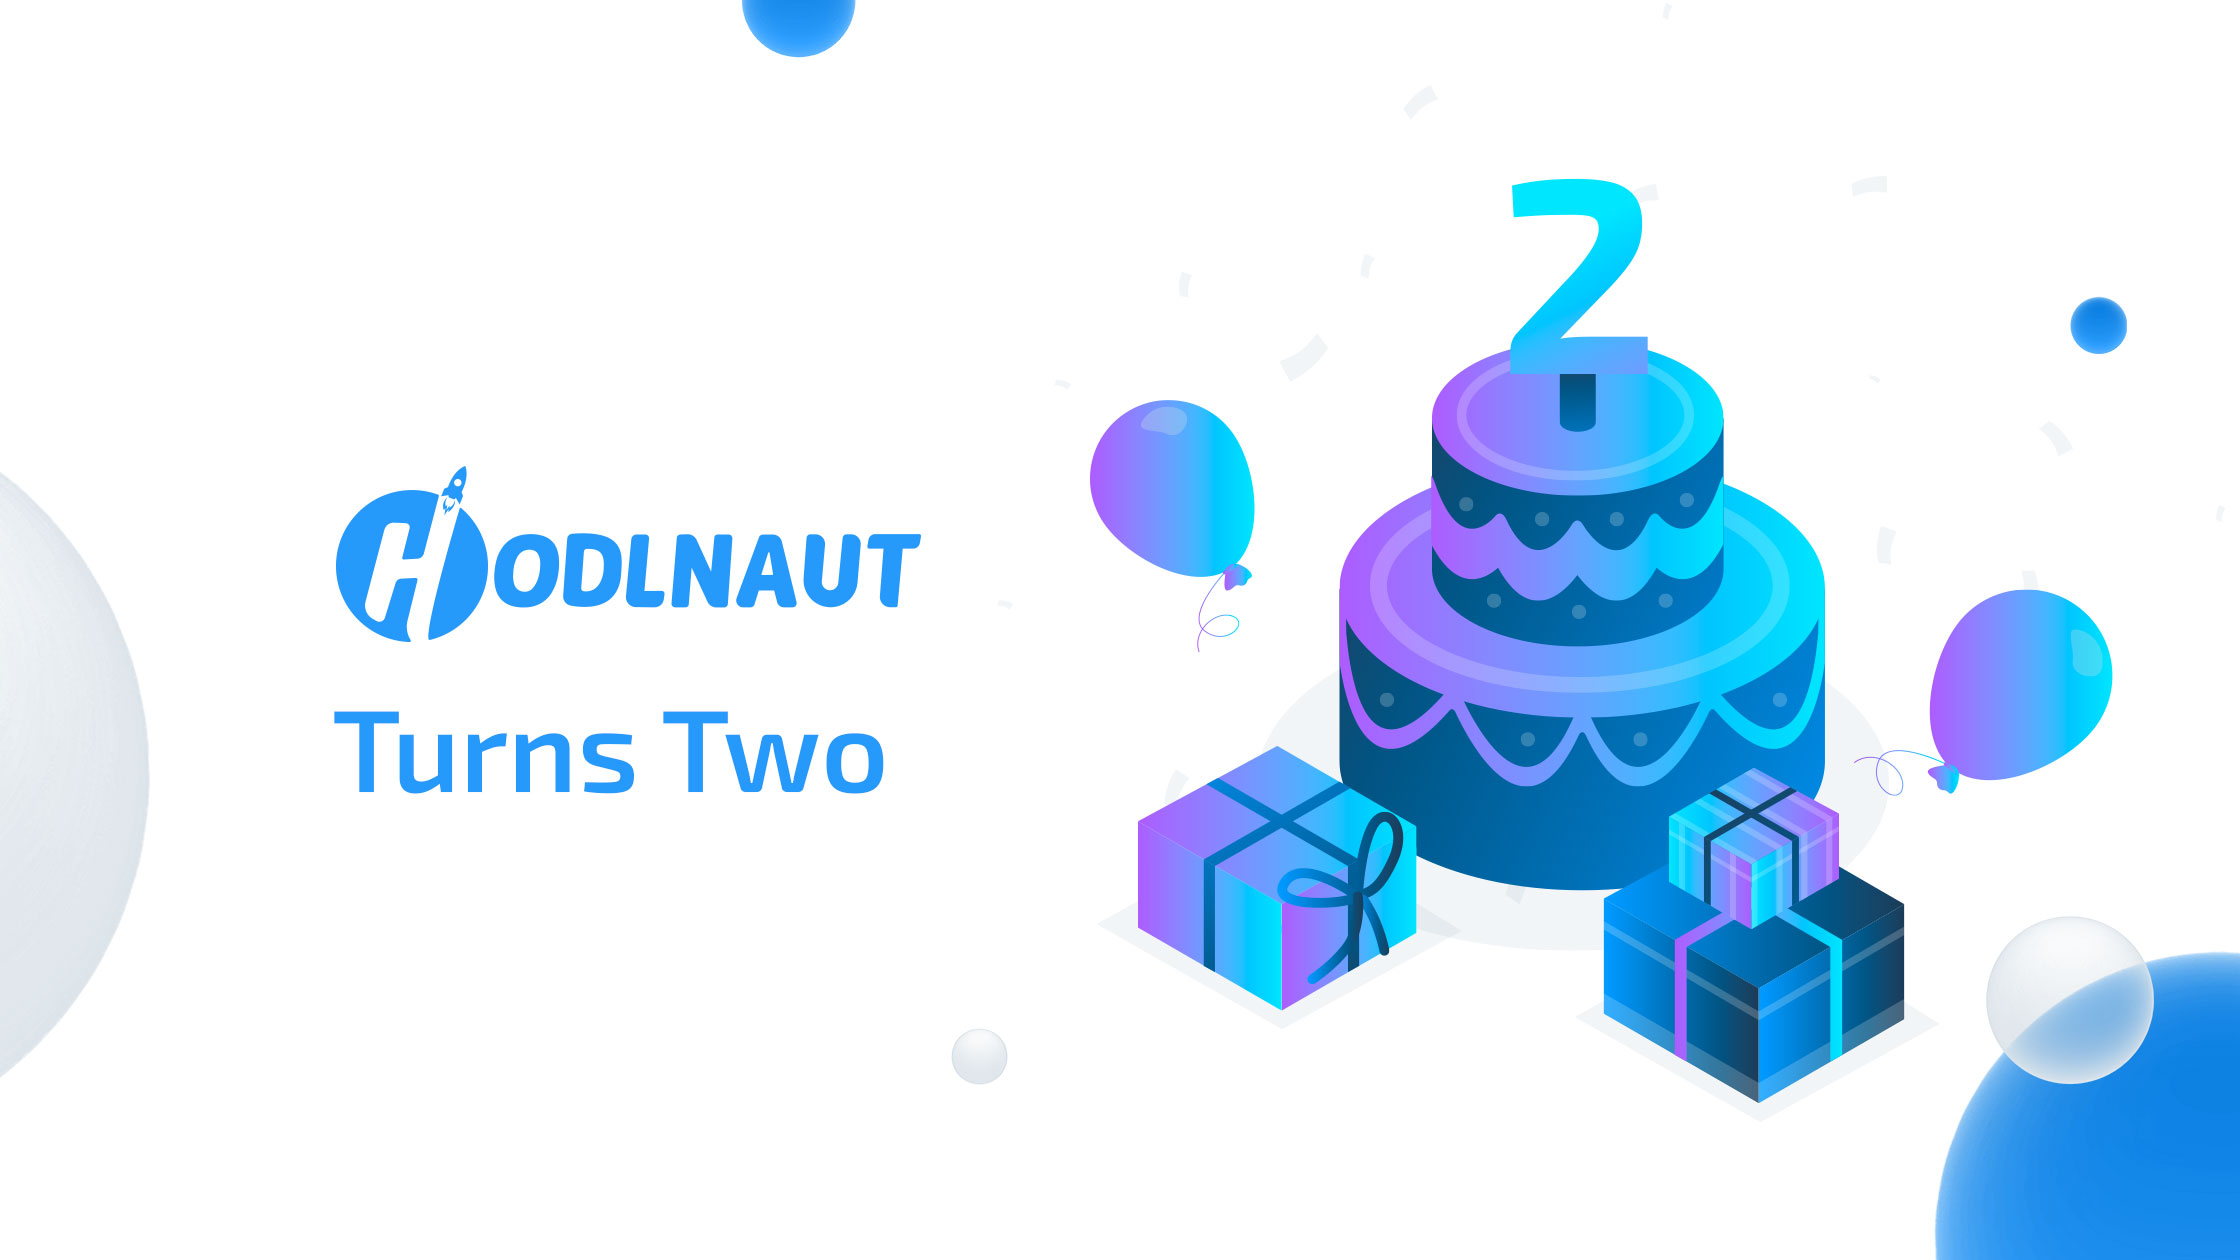 Hodlnaut Turns Two: The Journey So Far